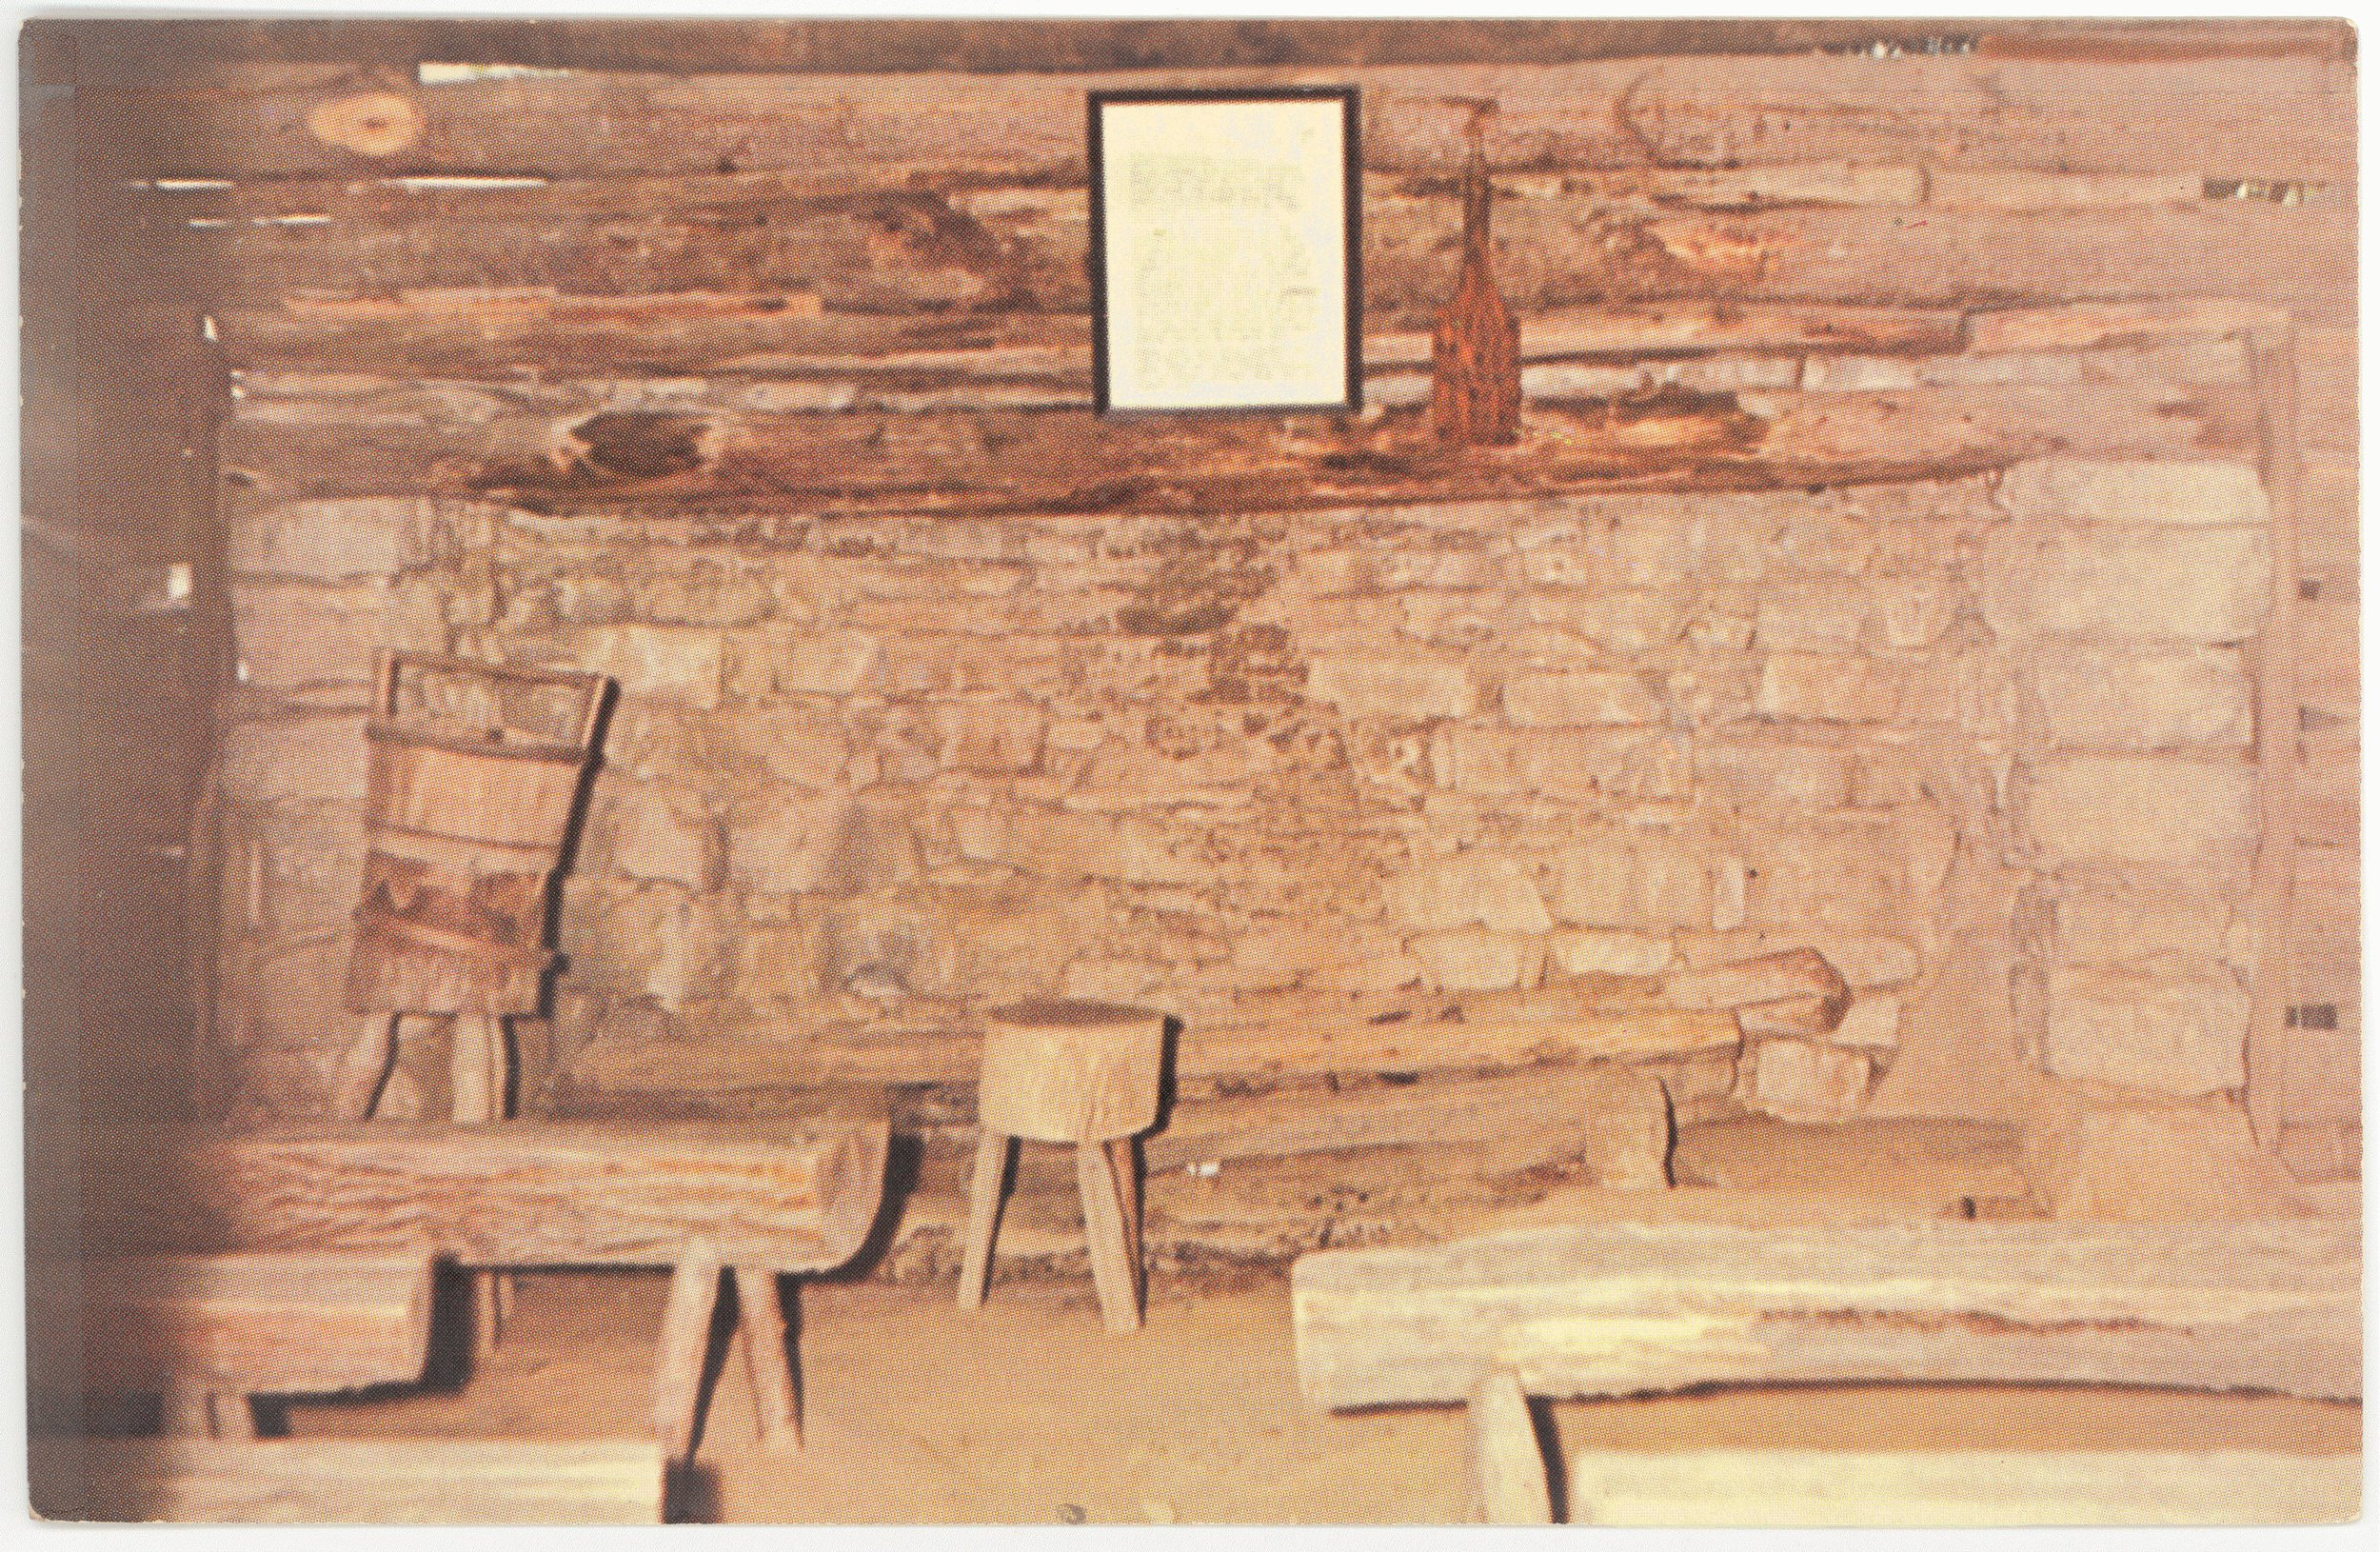 Interior of First School House in Kentucky